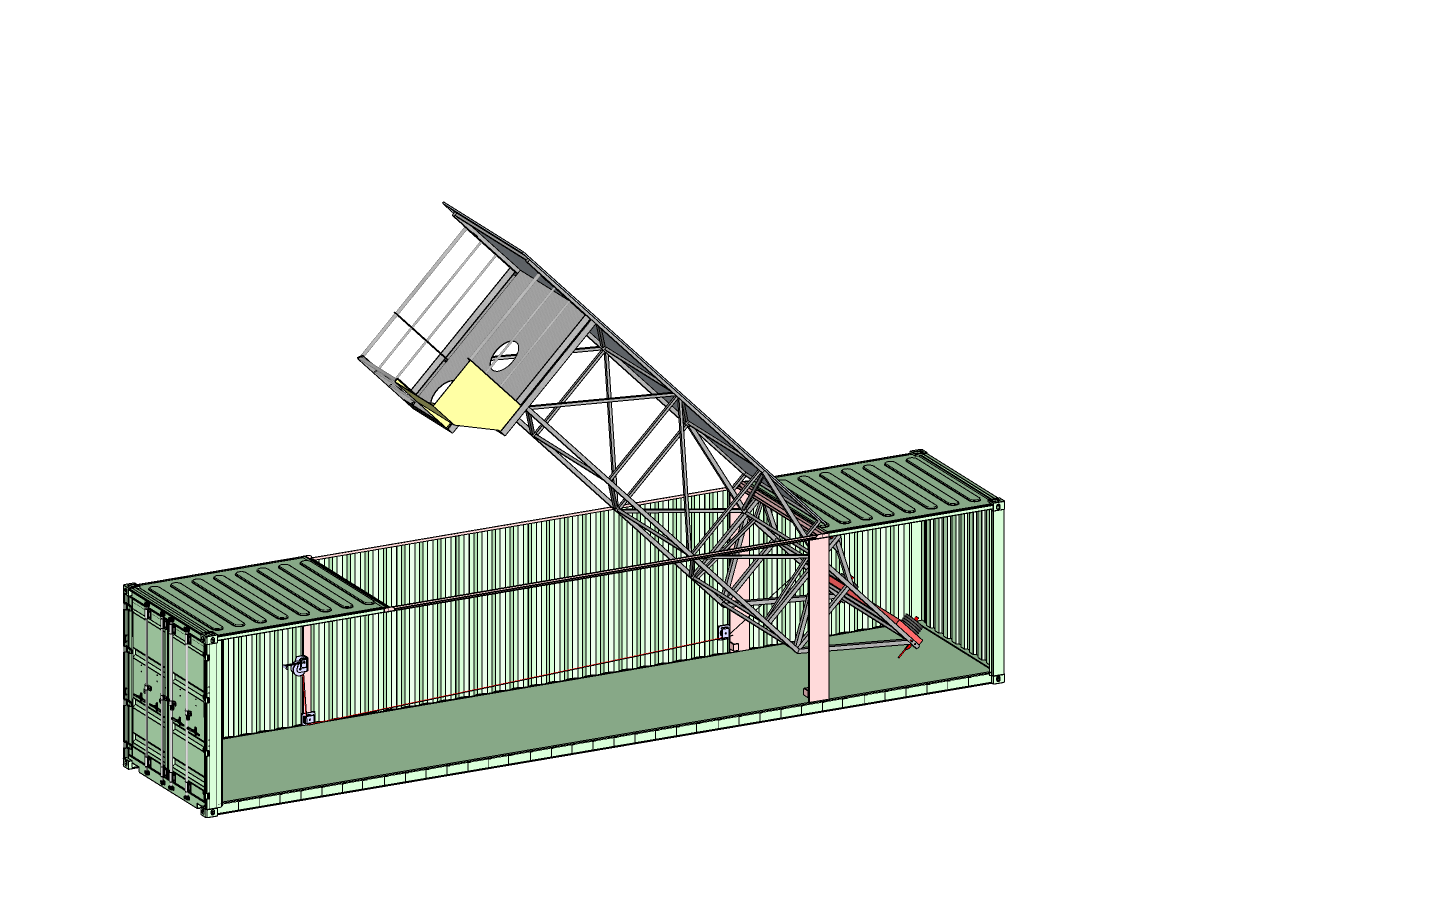 Container tower half